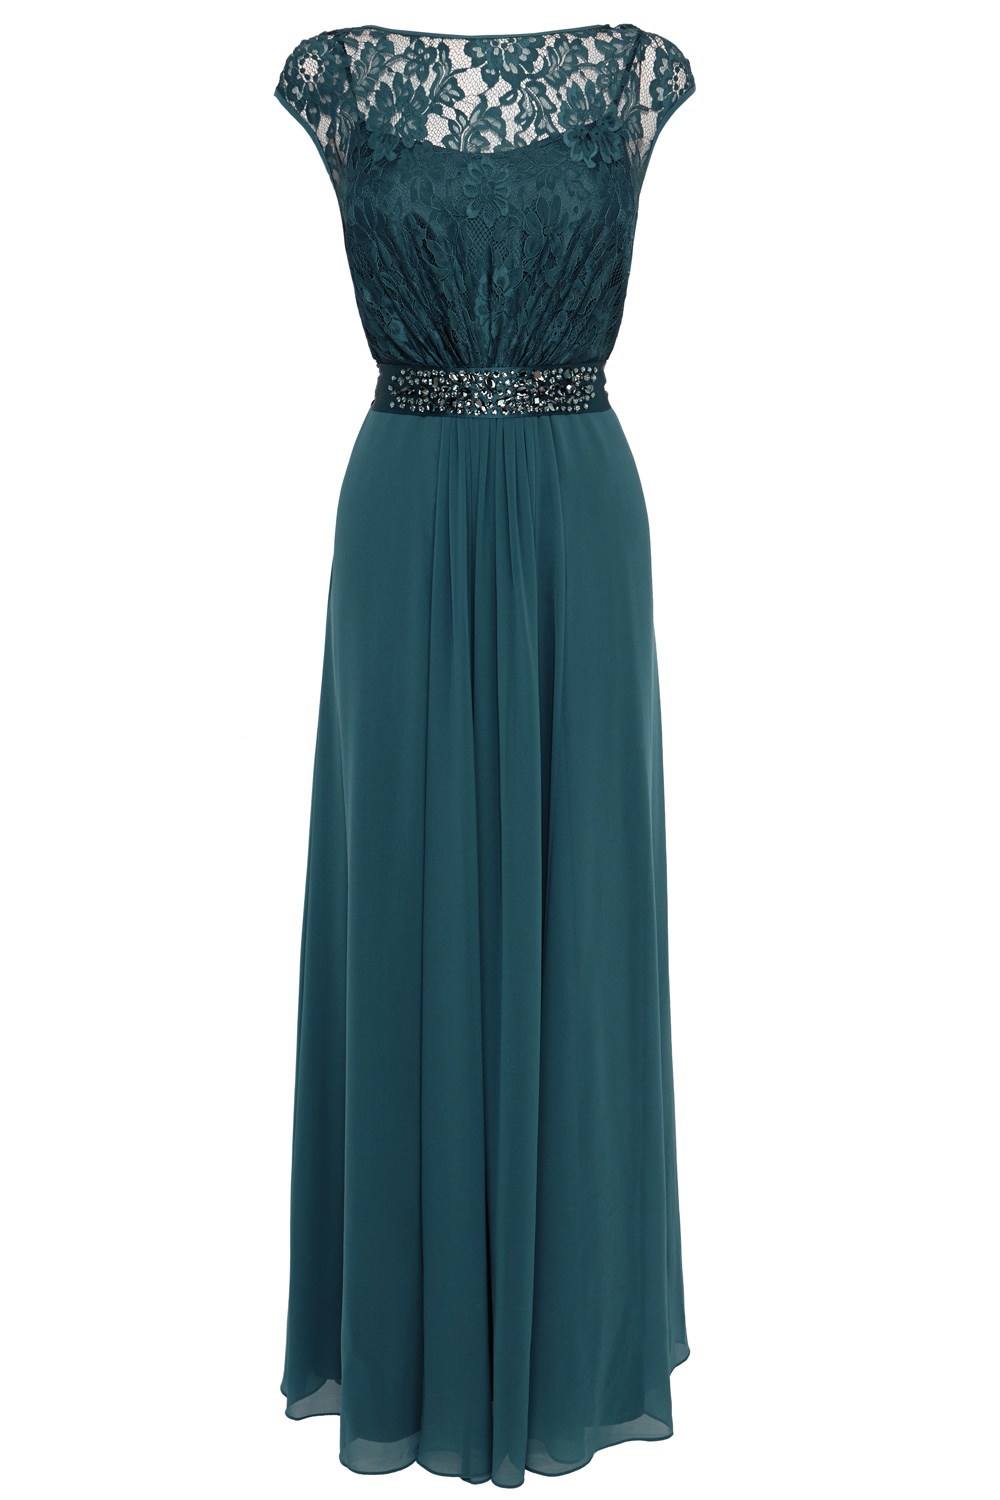 Green lori lee maxi dress